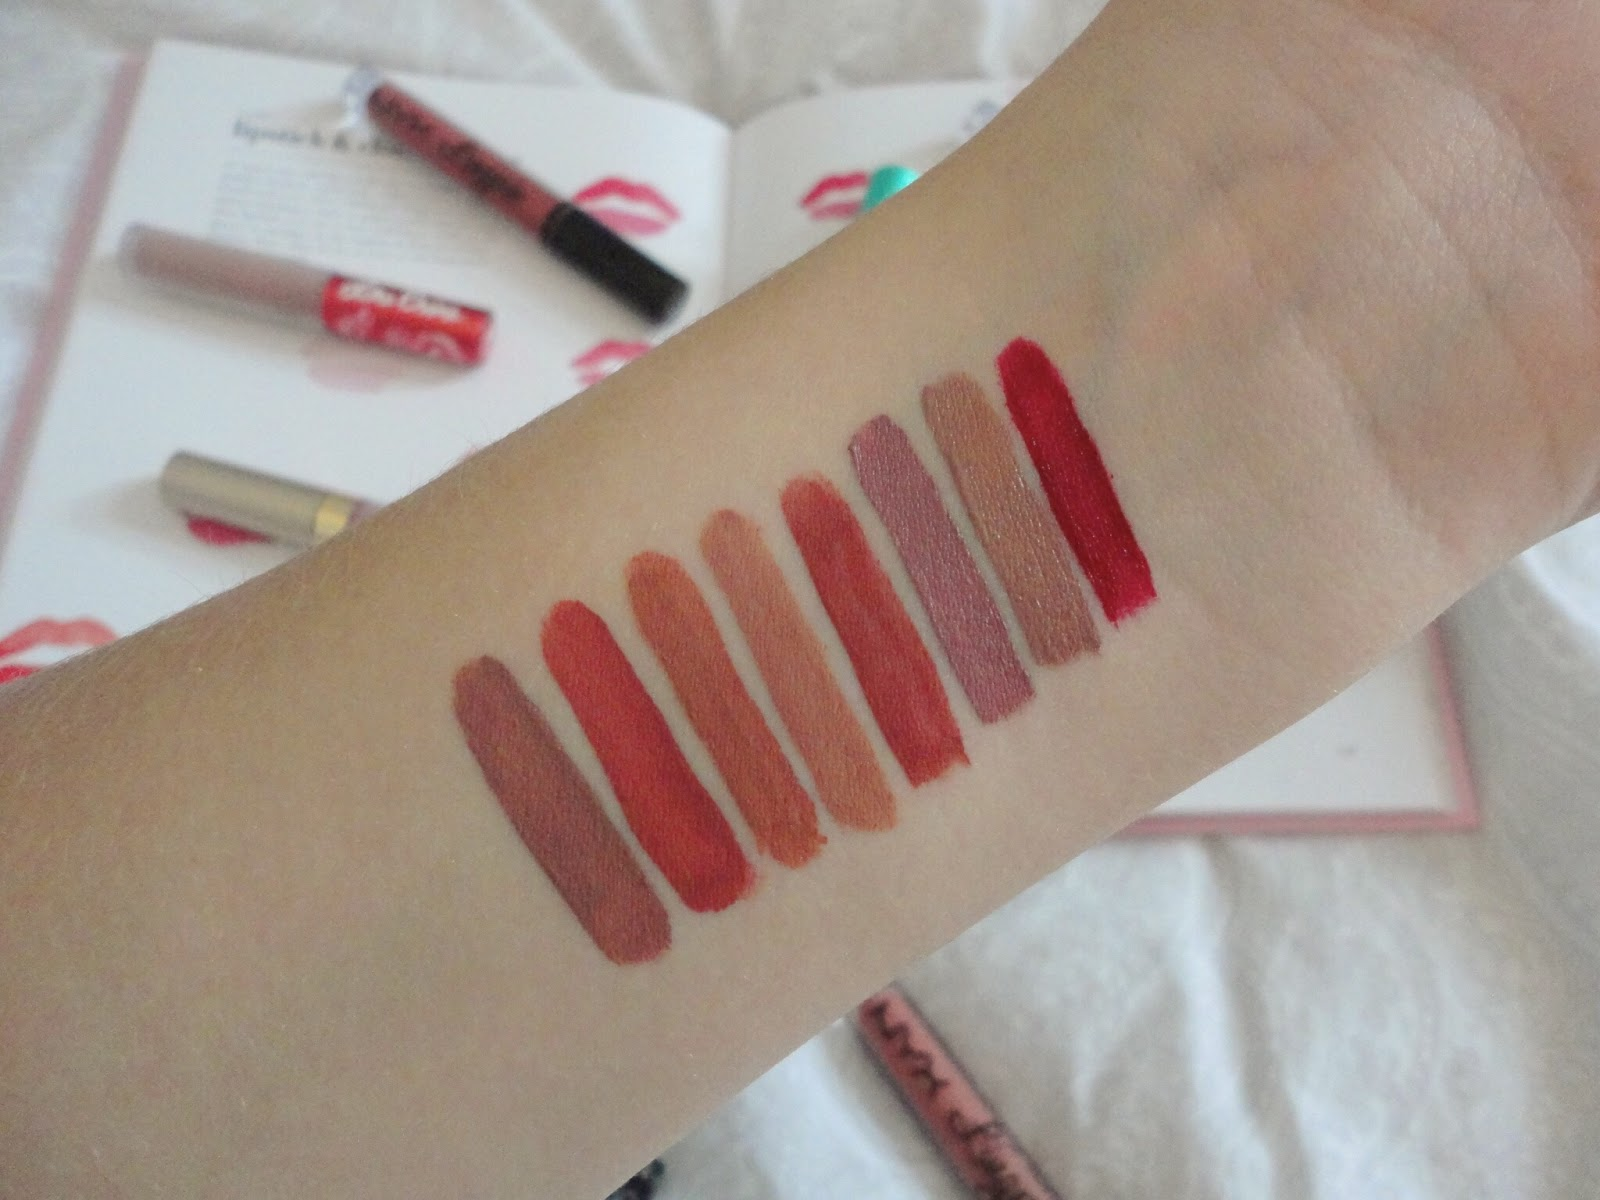 swatches of liquid lipsticks